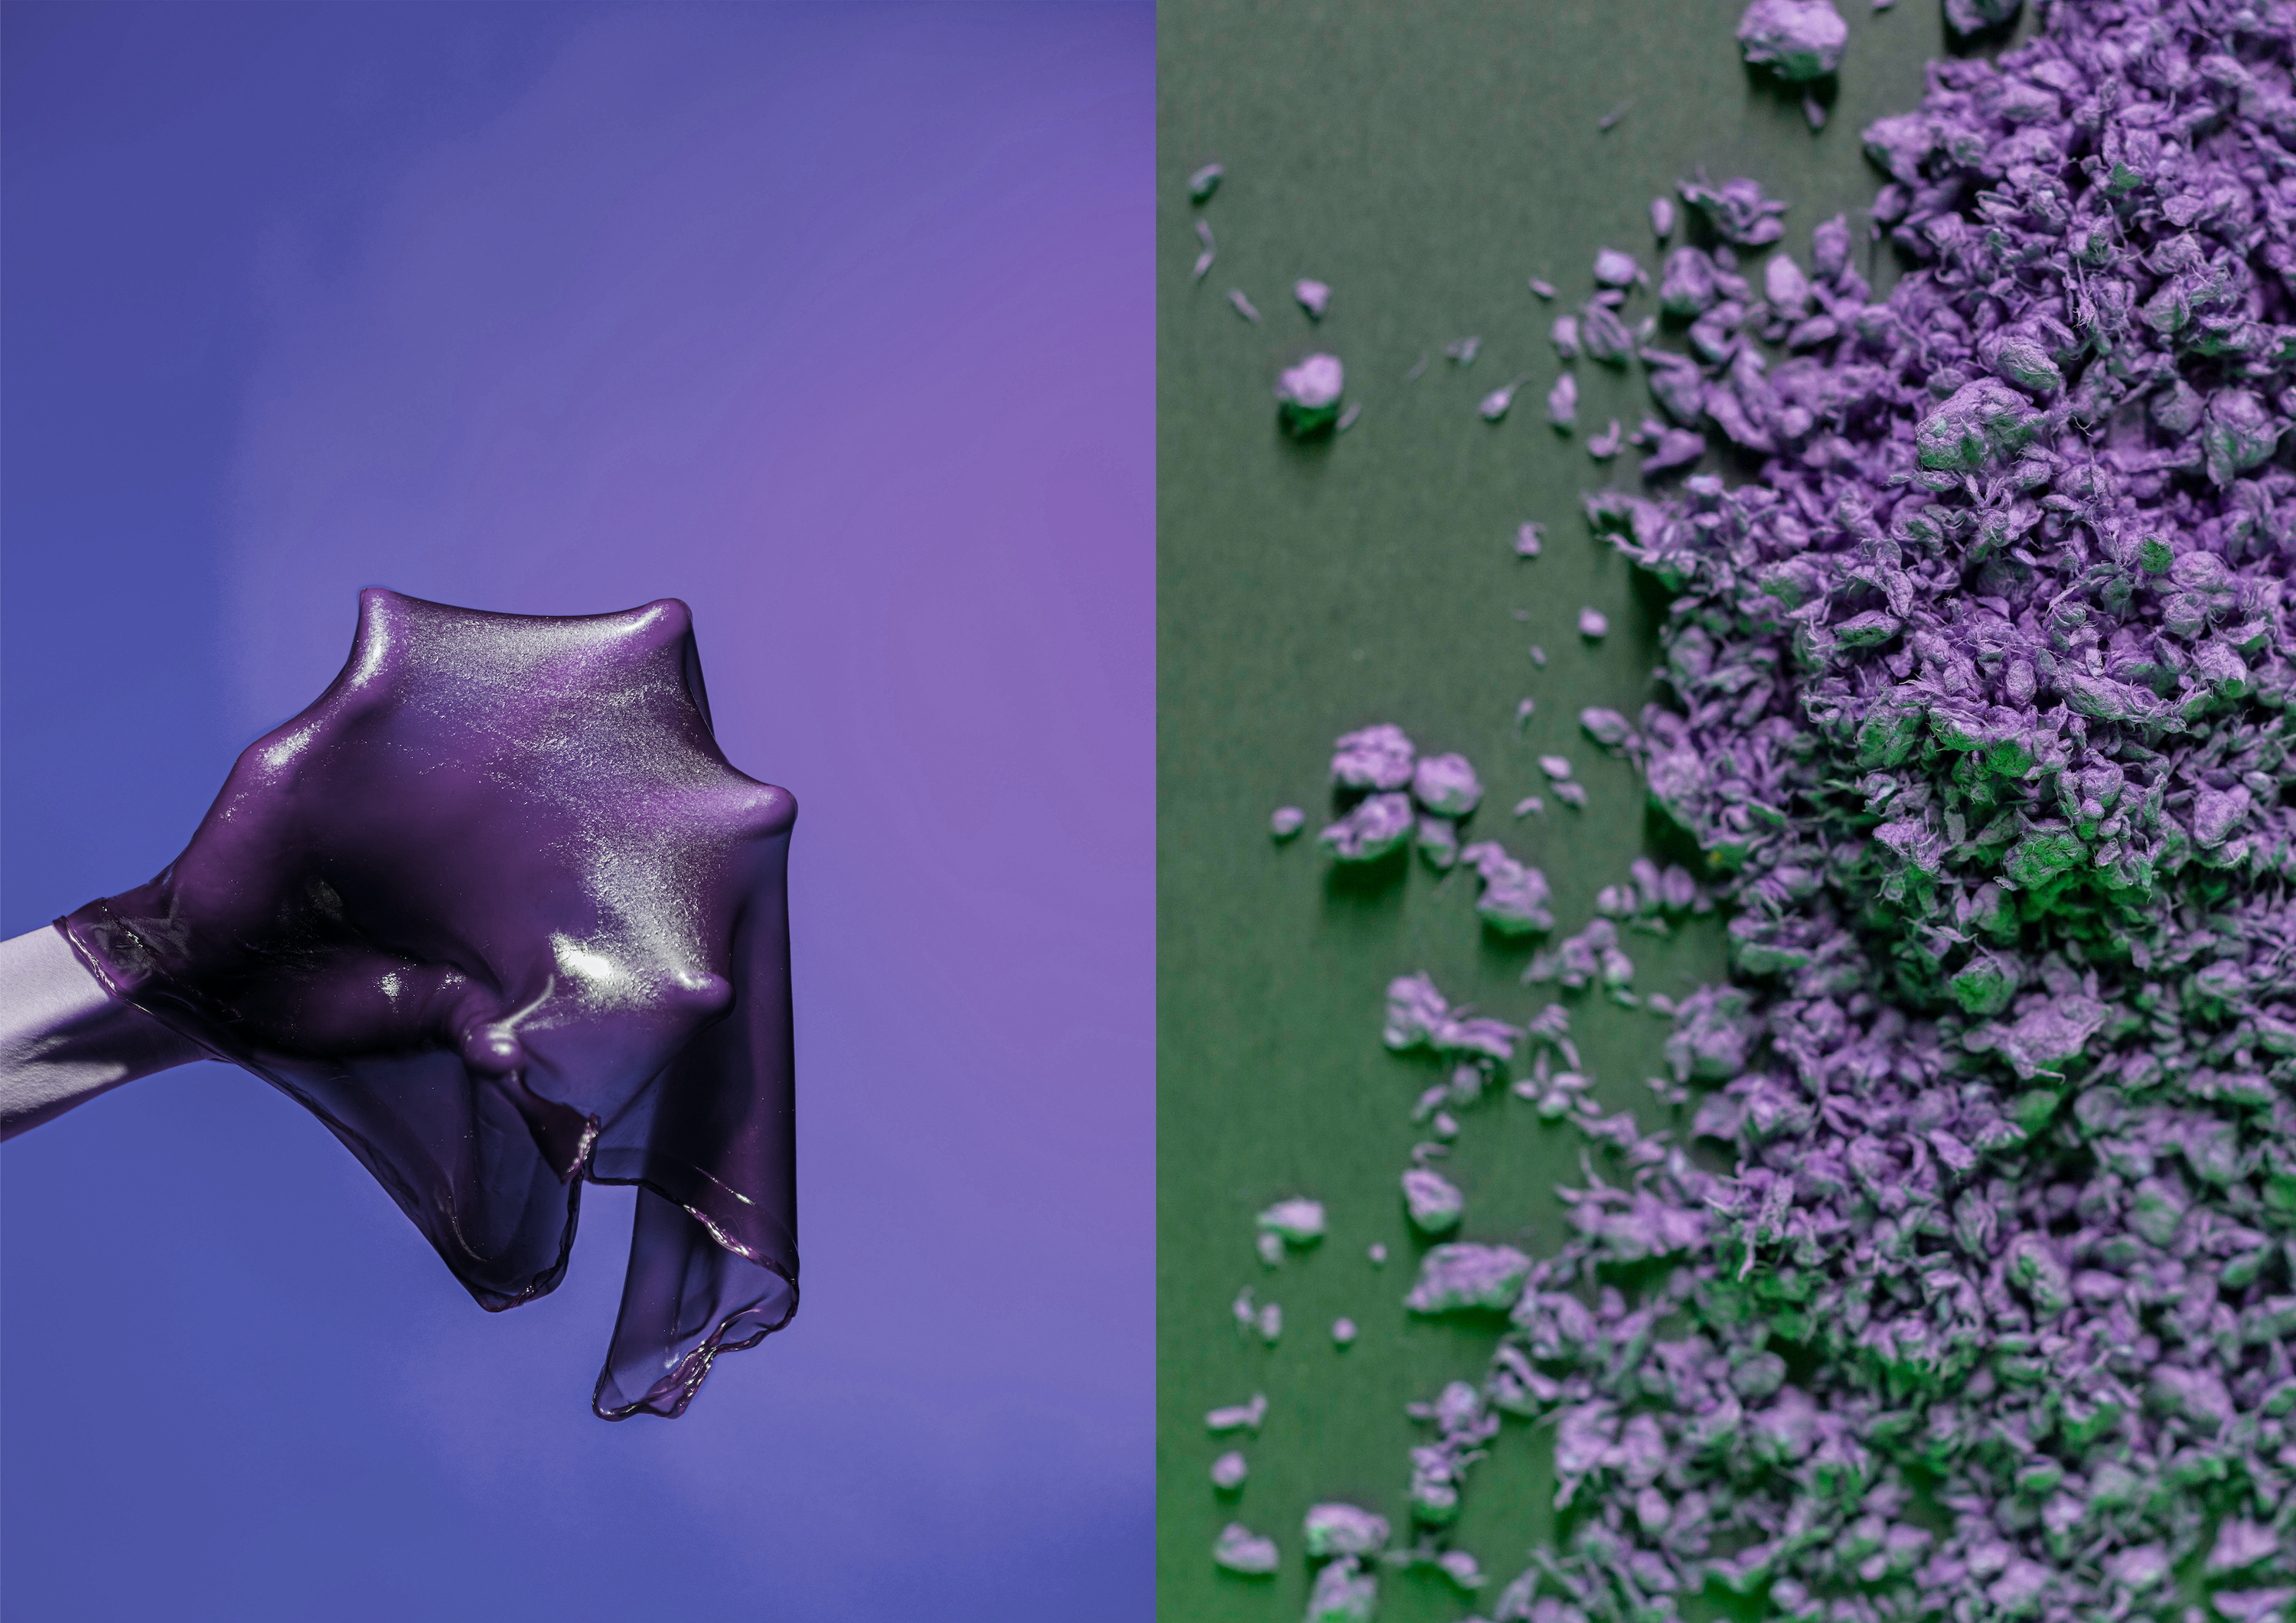 On the left: Hand holding a violet bioslime. On the right violet cellulose crumbs spread on a green paper.